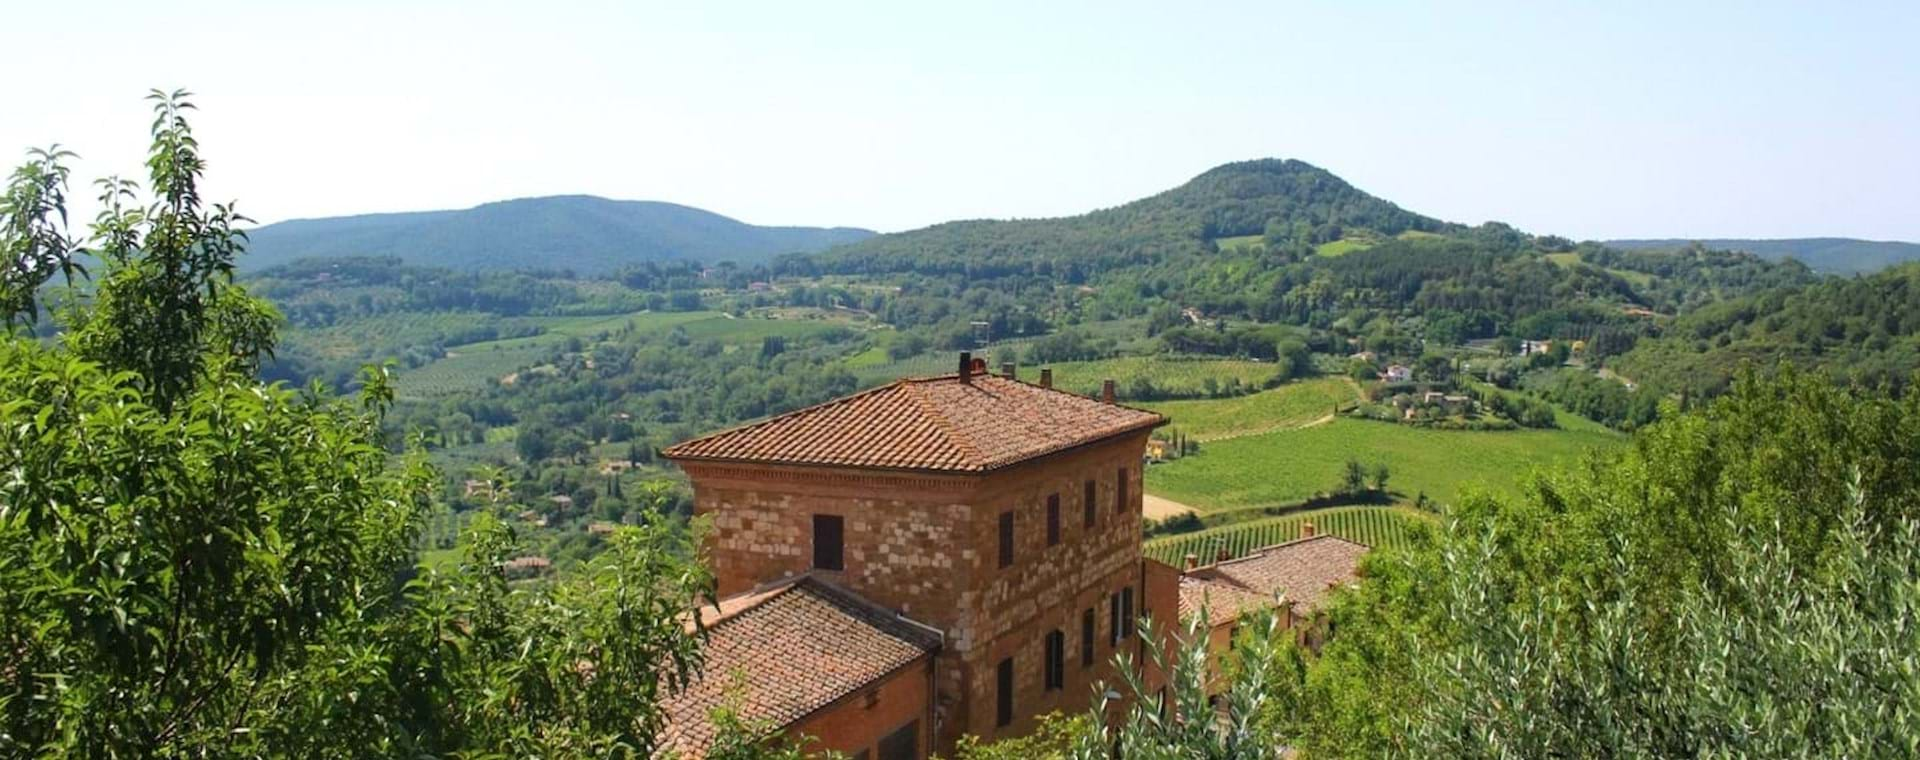 Tuscan Countryside Day Trip from Rome with 3-Course Lunch & Wine Pairing